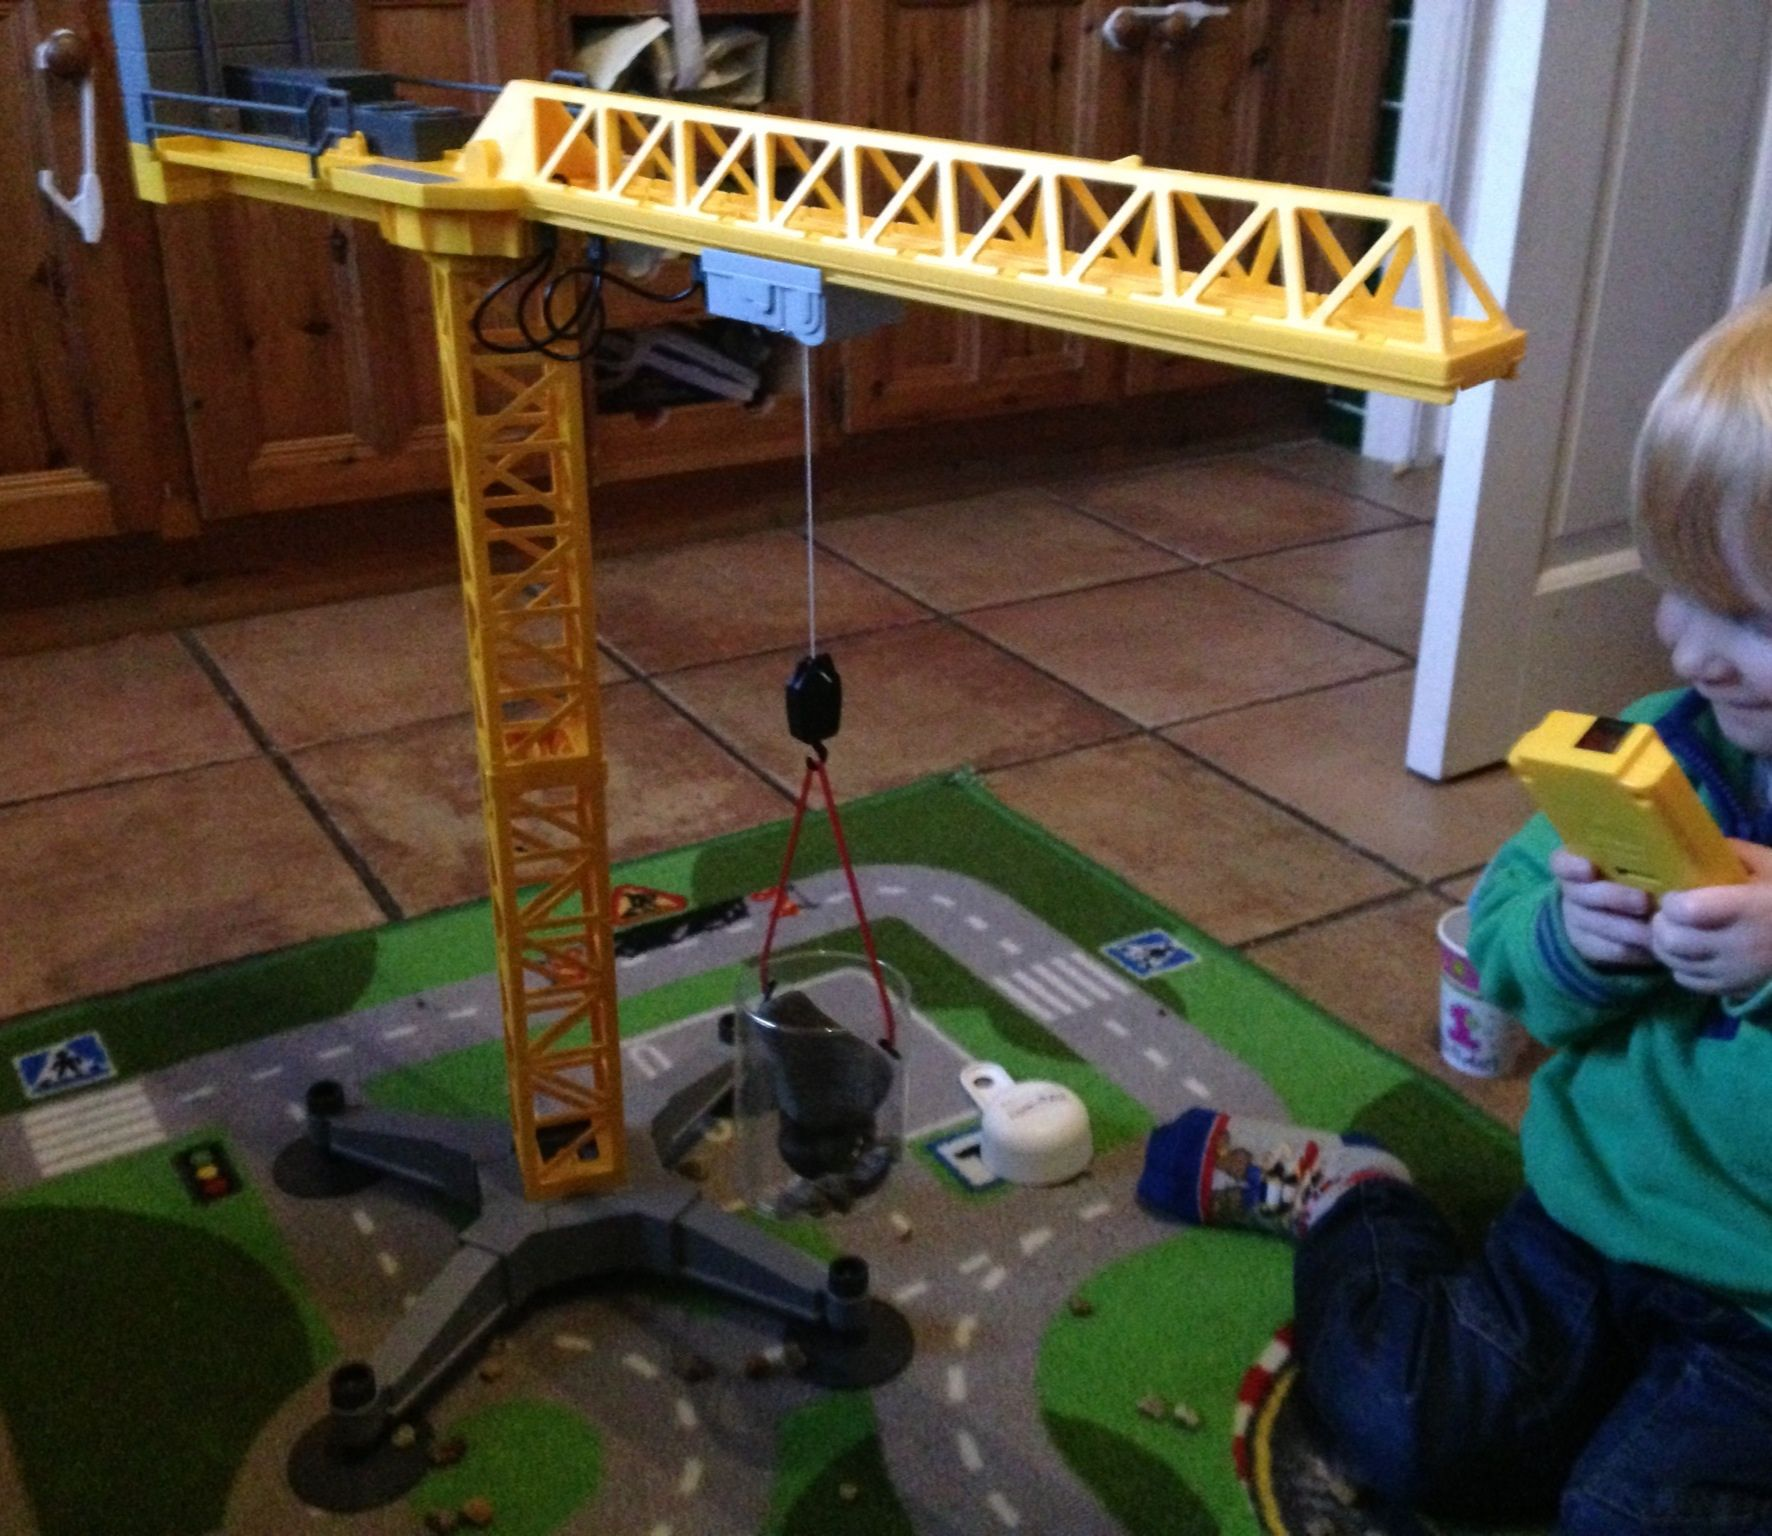 Playmobil crane the best toy for a construction crazy 3 yr old